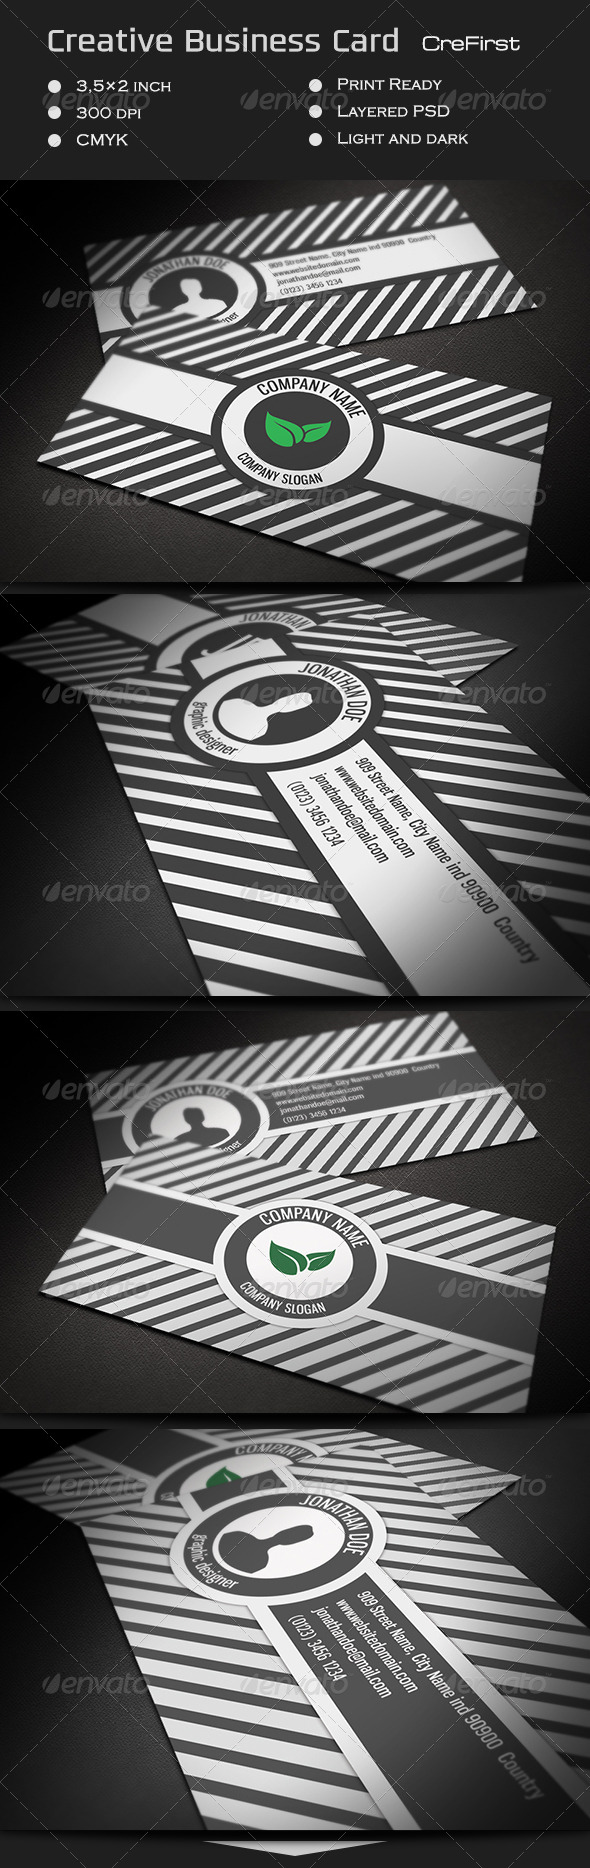 GraphicRiver Creative Business Card CreFirst 7187096